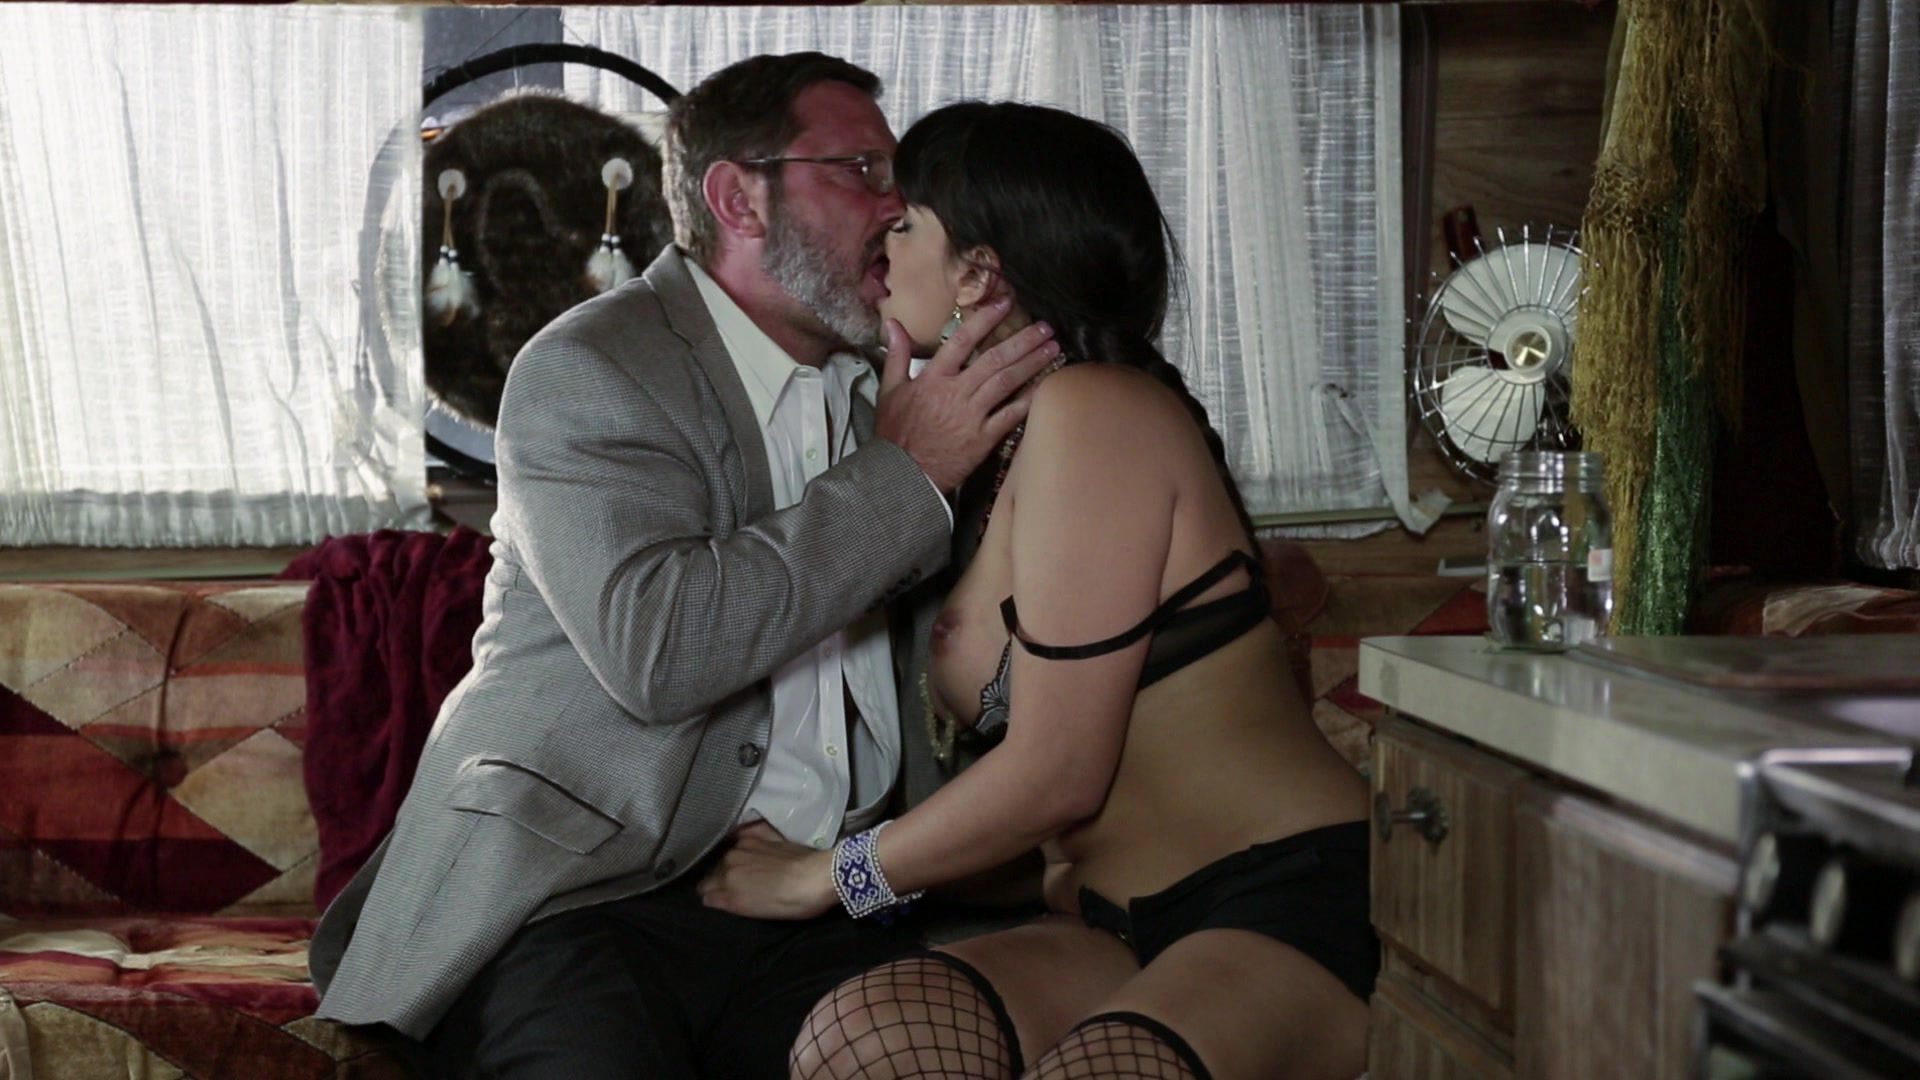 Scene with Brad Armstrong and Mercedes Carrera - image 8 out of 20